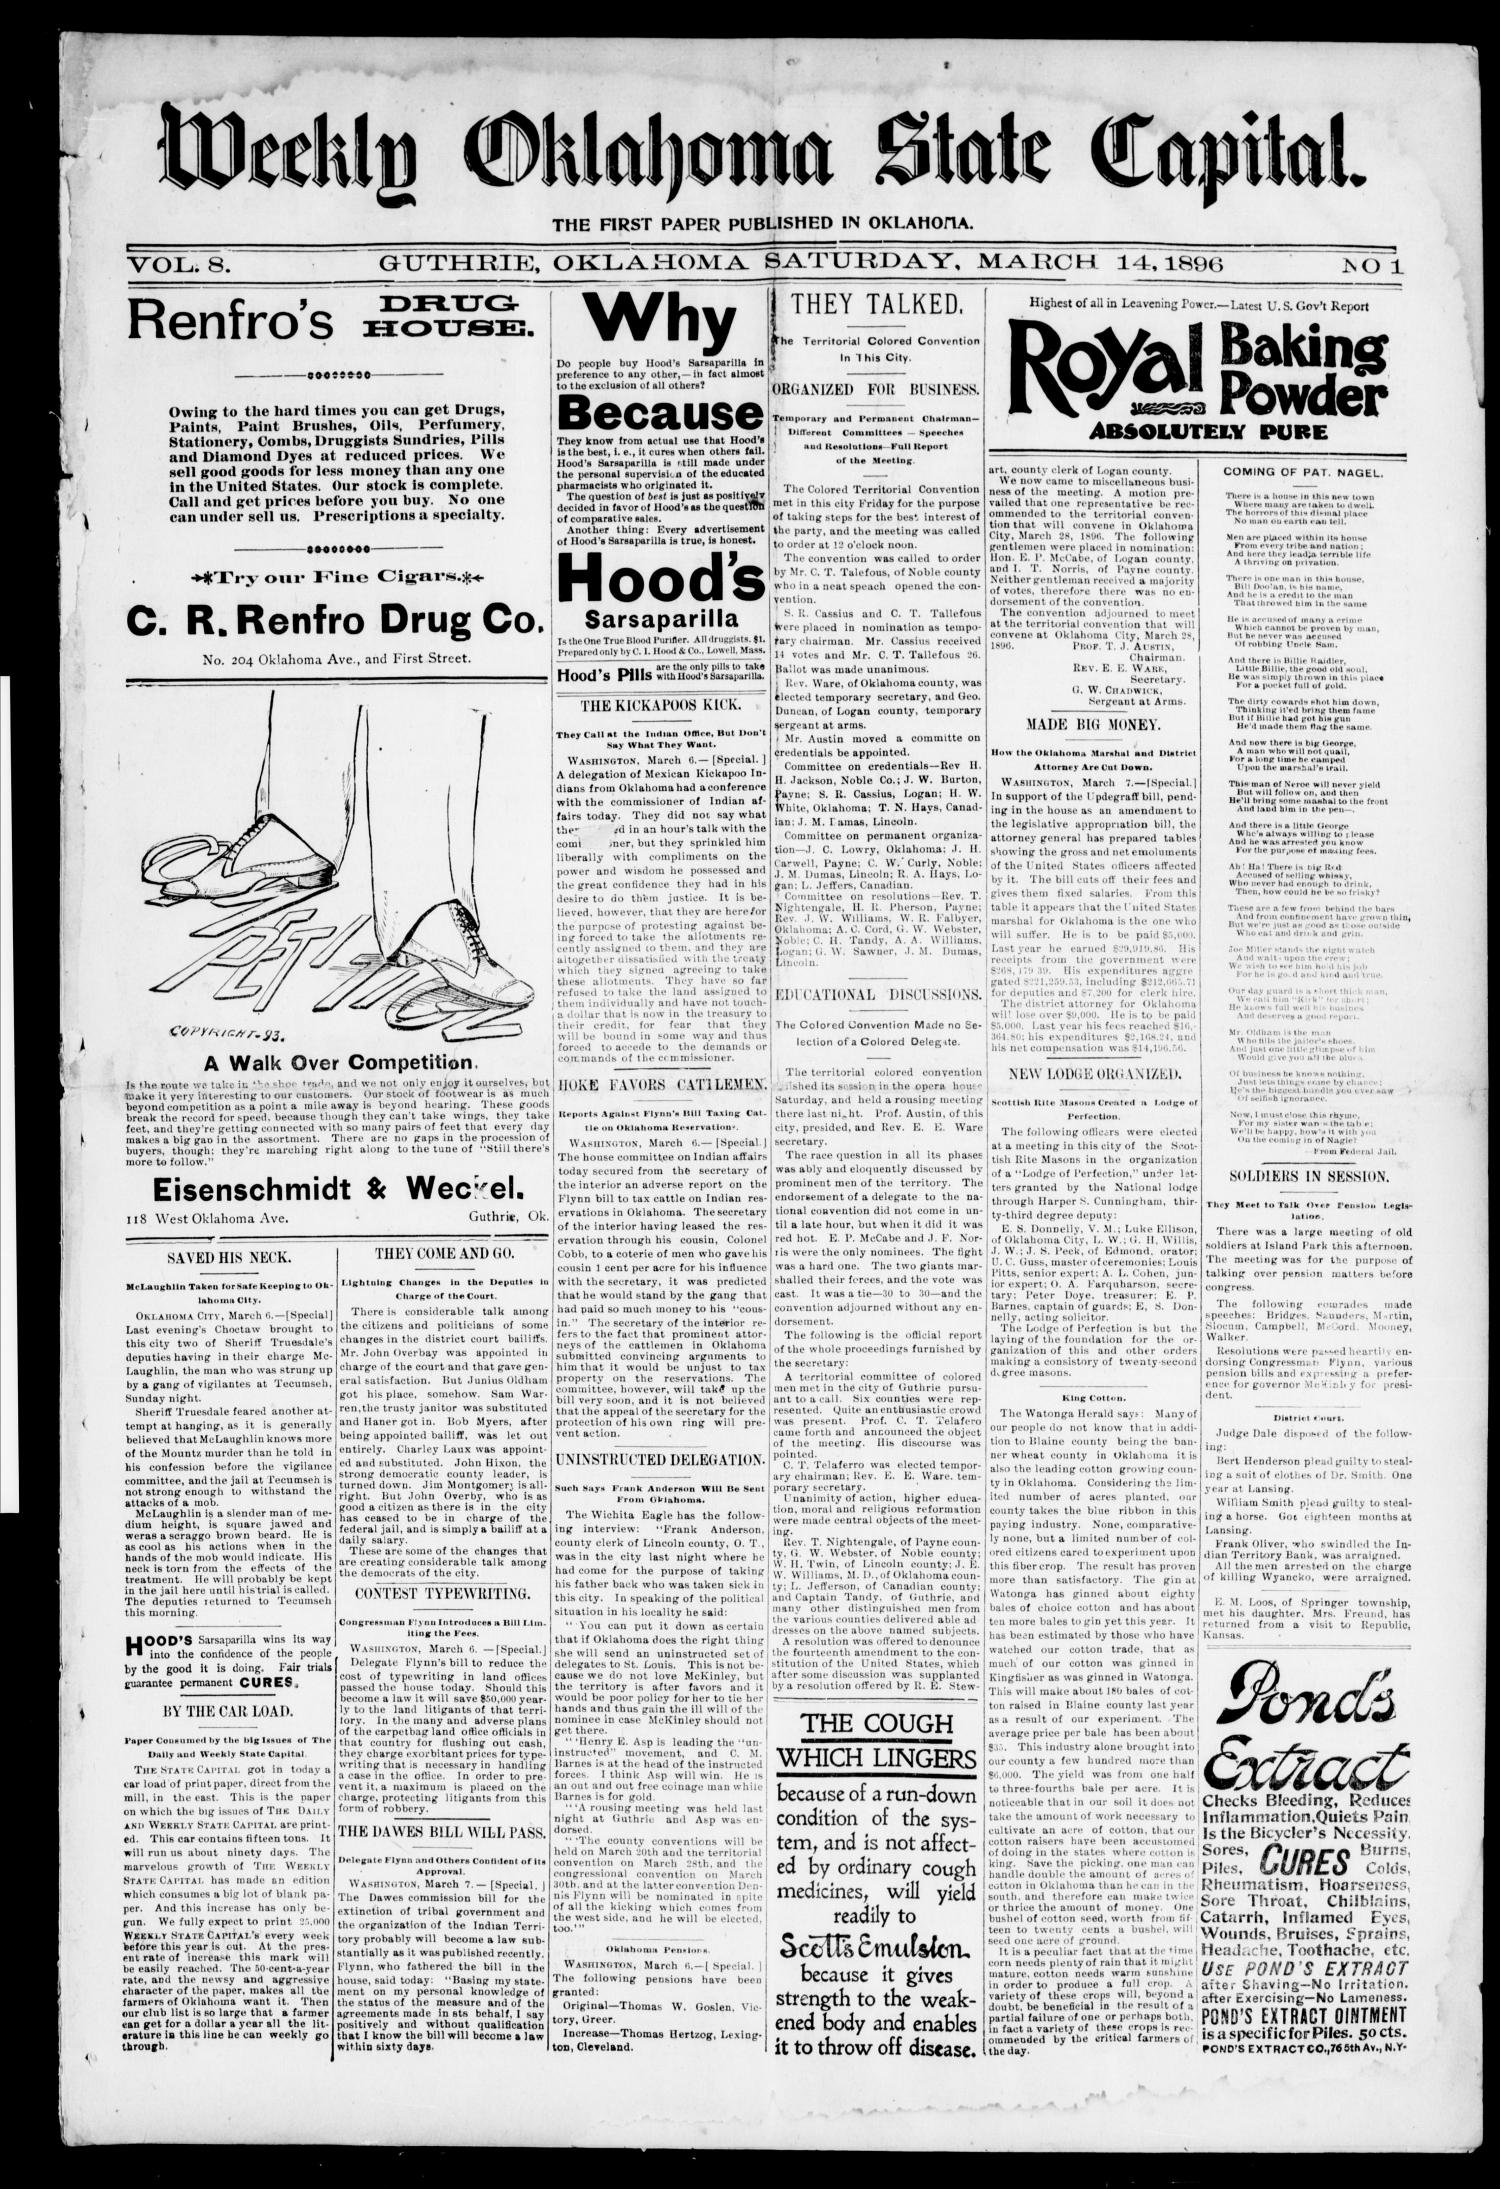 Weekly Oklahoma State Capital. (Guthrie, Okla.), Vol. 8, No. 1, Ed. 1 Saturday, March 14, 1896                                                                                                      [Sequence #]: 1 of 8